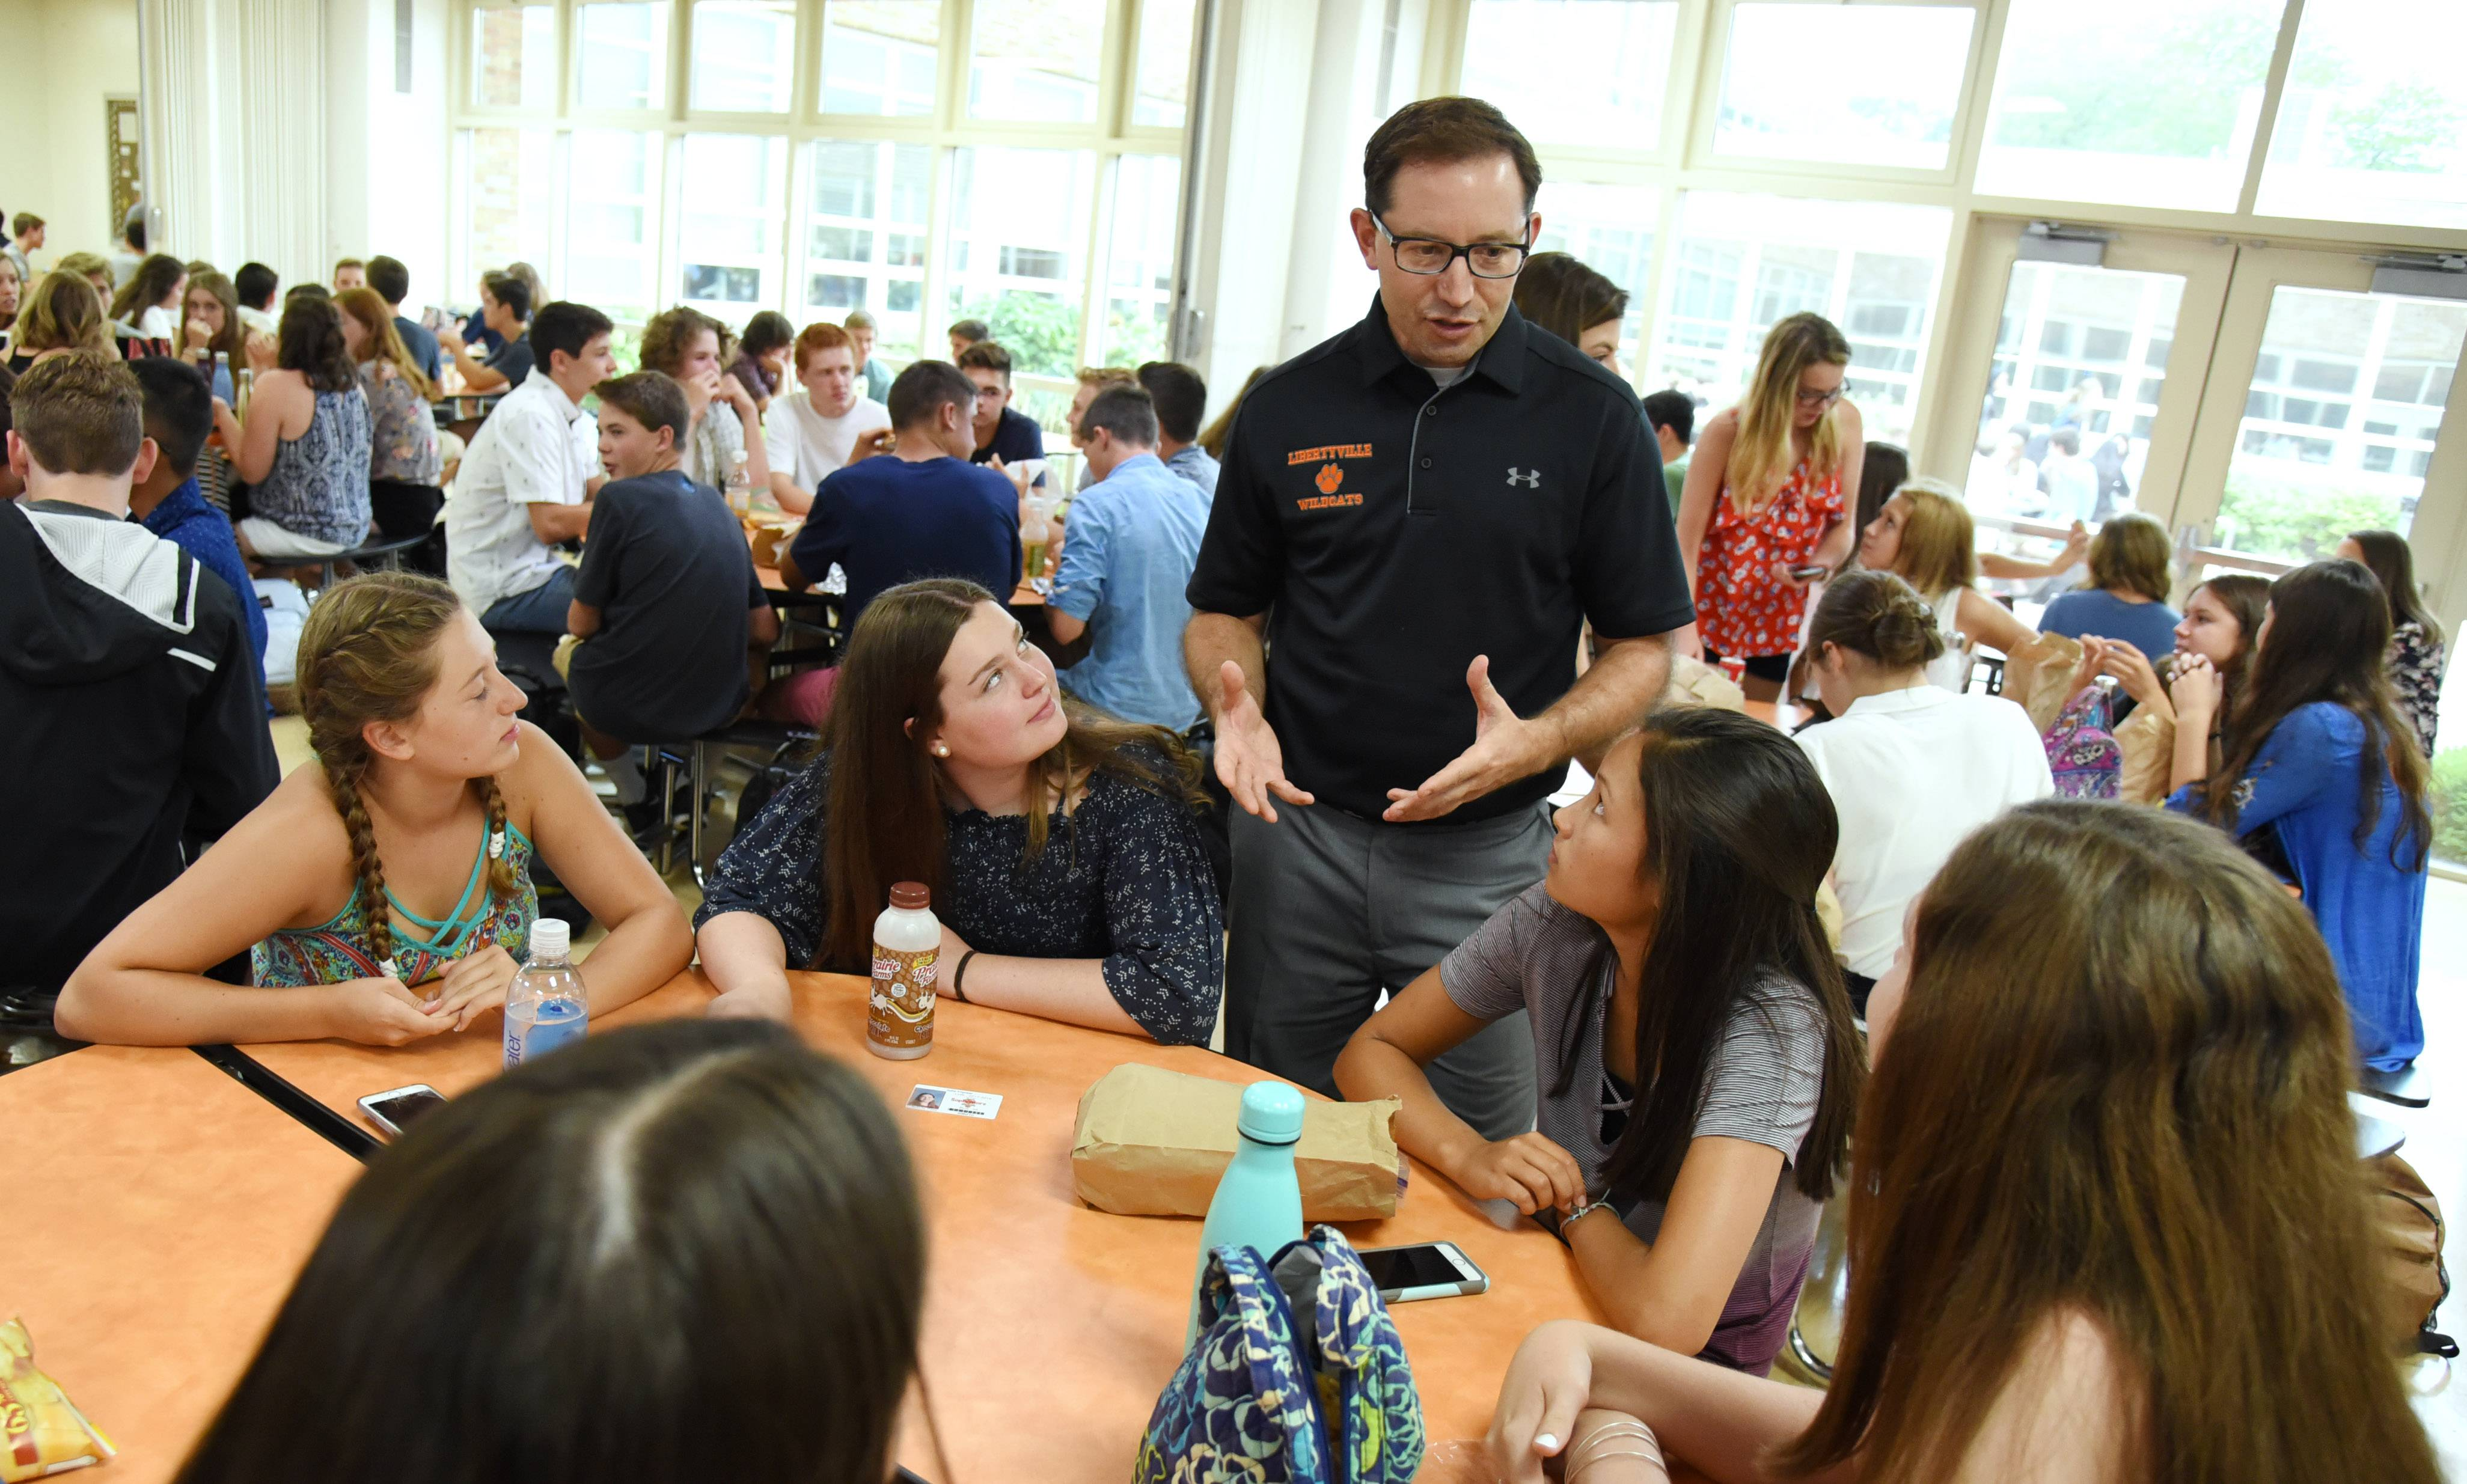 New Libertyville High School principal Thomas Koulentes said the first day of classes went well, and that included a new traffic flow and parking regulations.